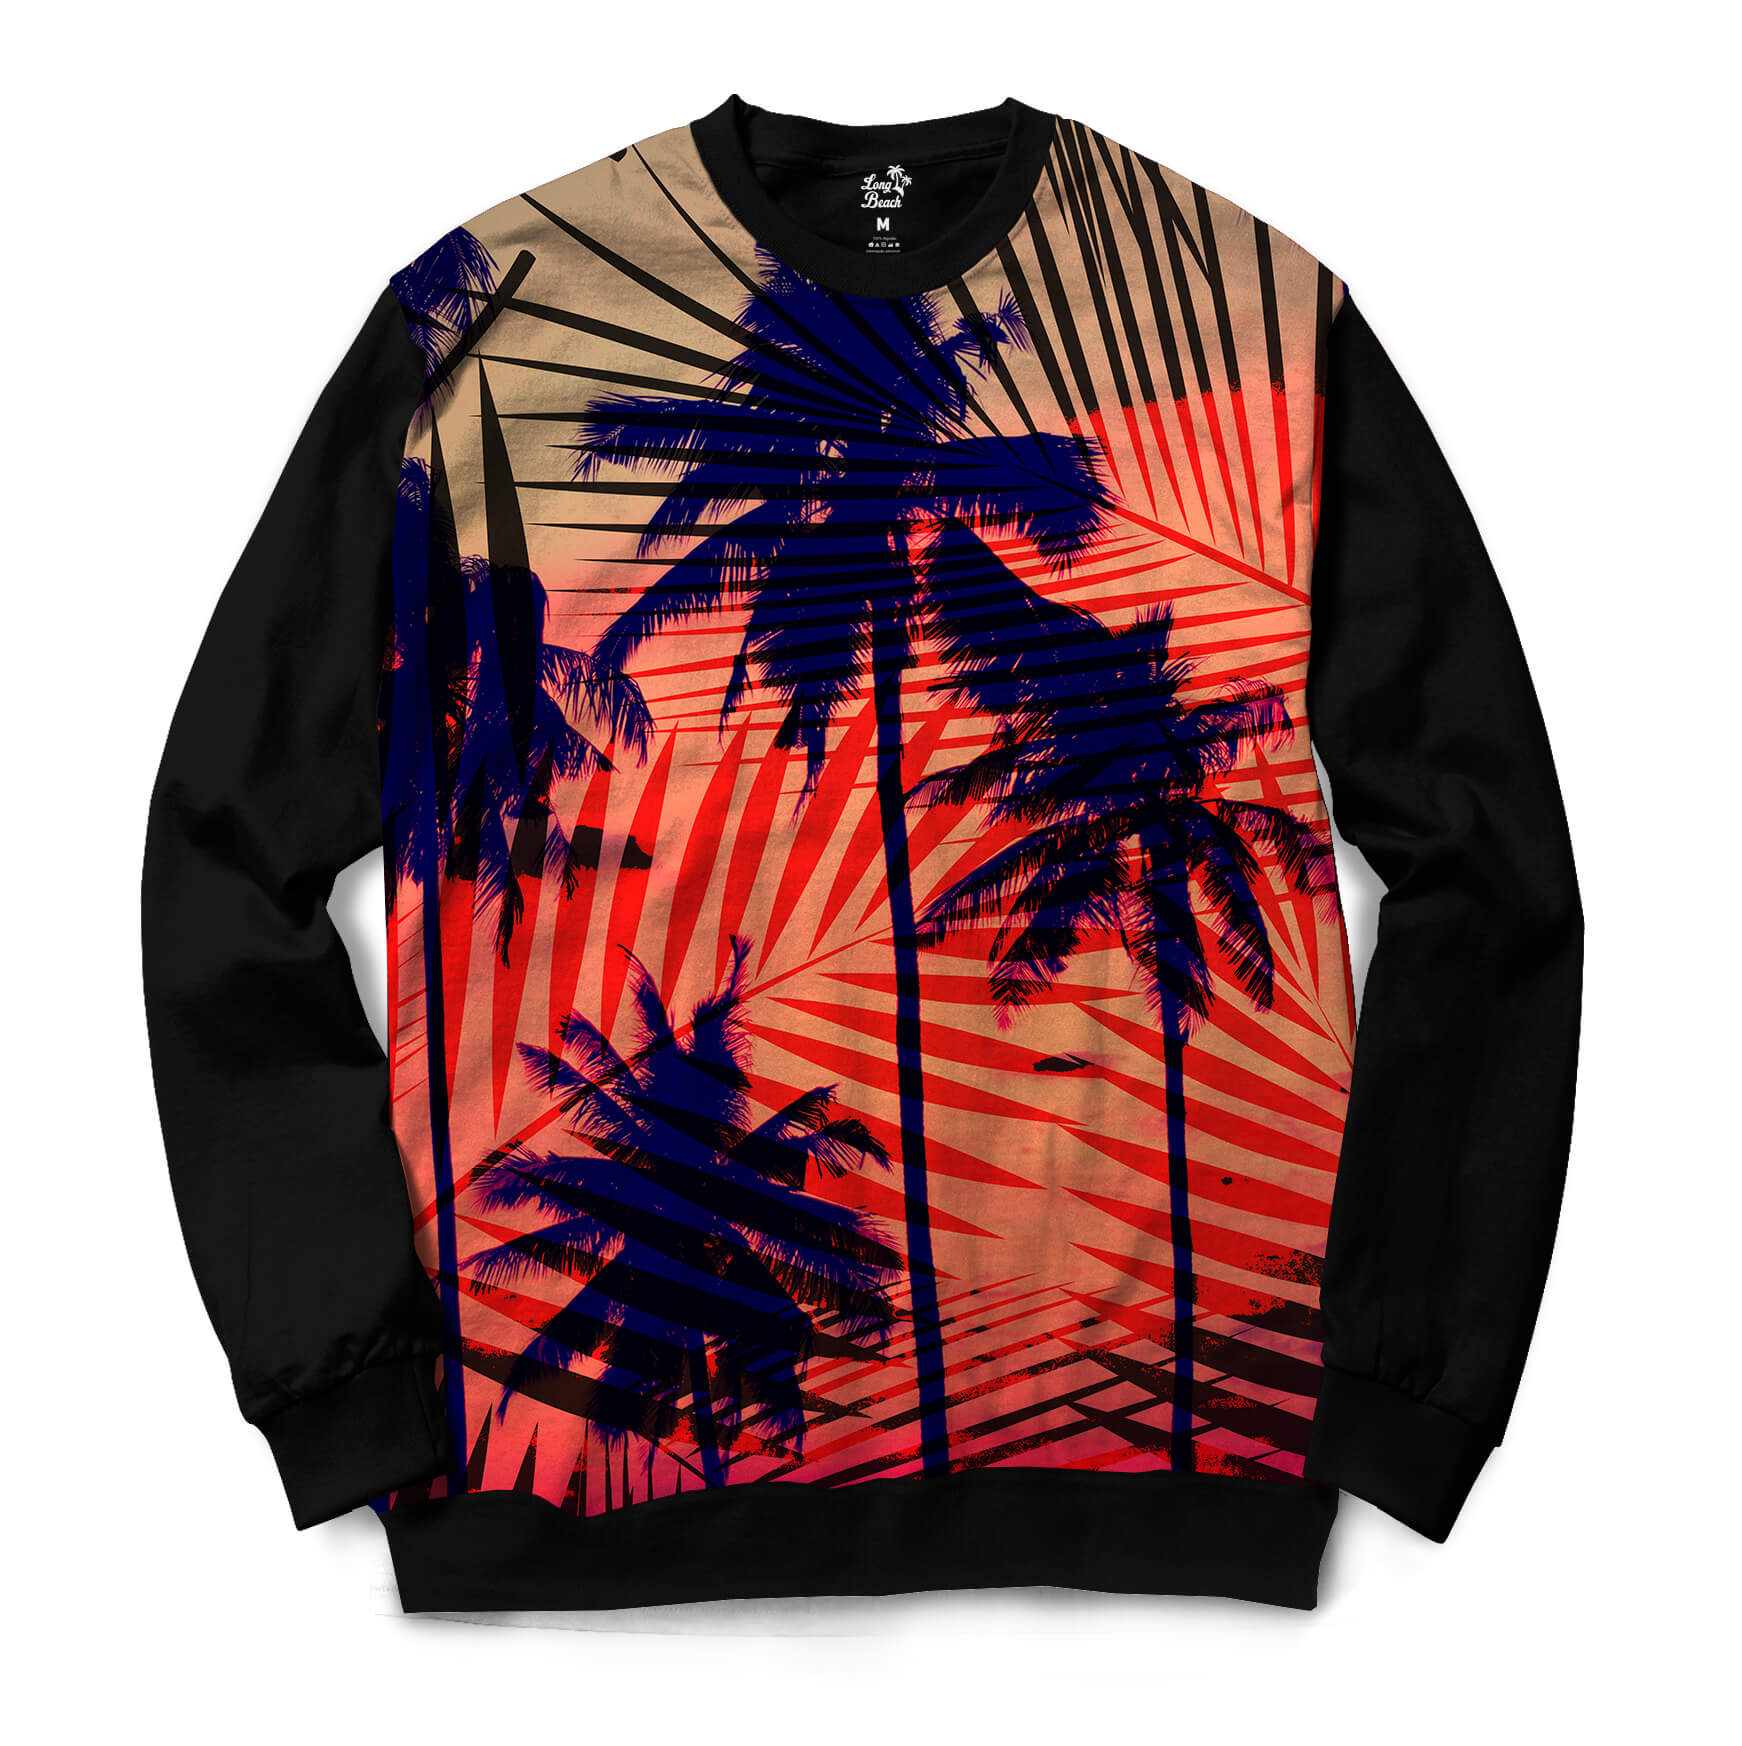 Moletom Gola Careca Long Beach Hawaii Tribal Full Print Vermelho